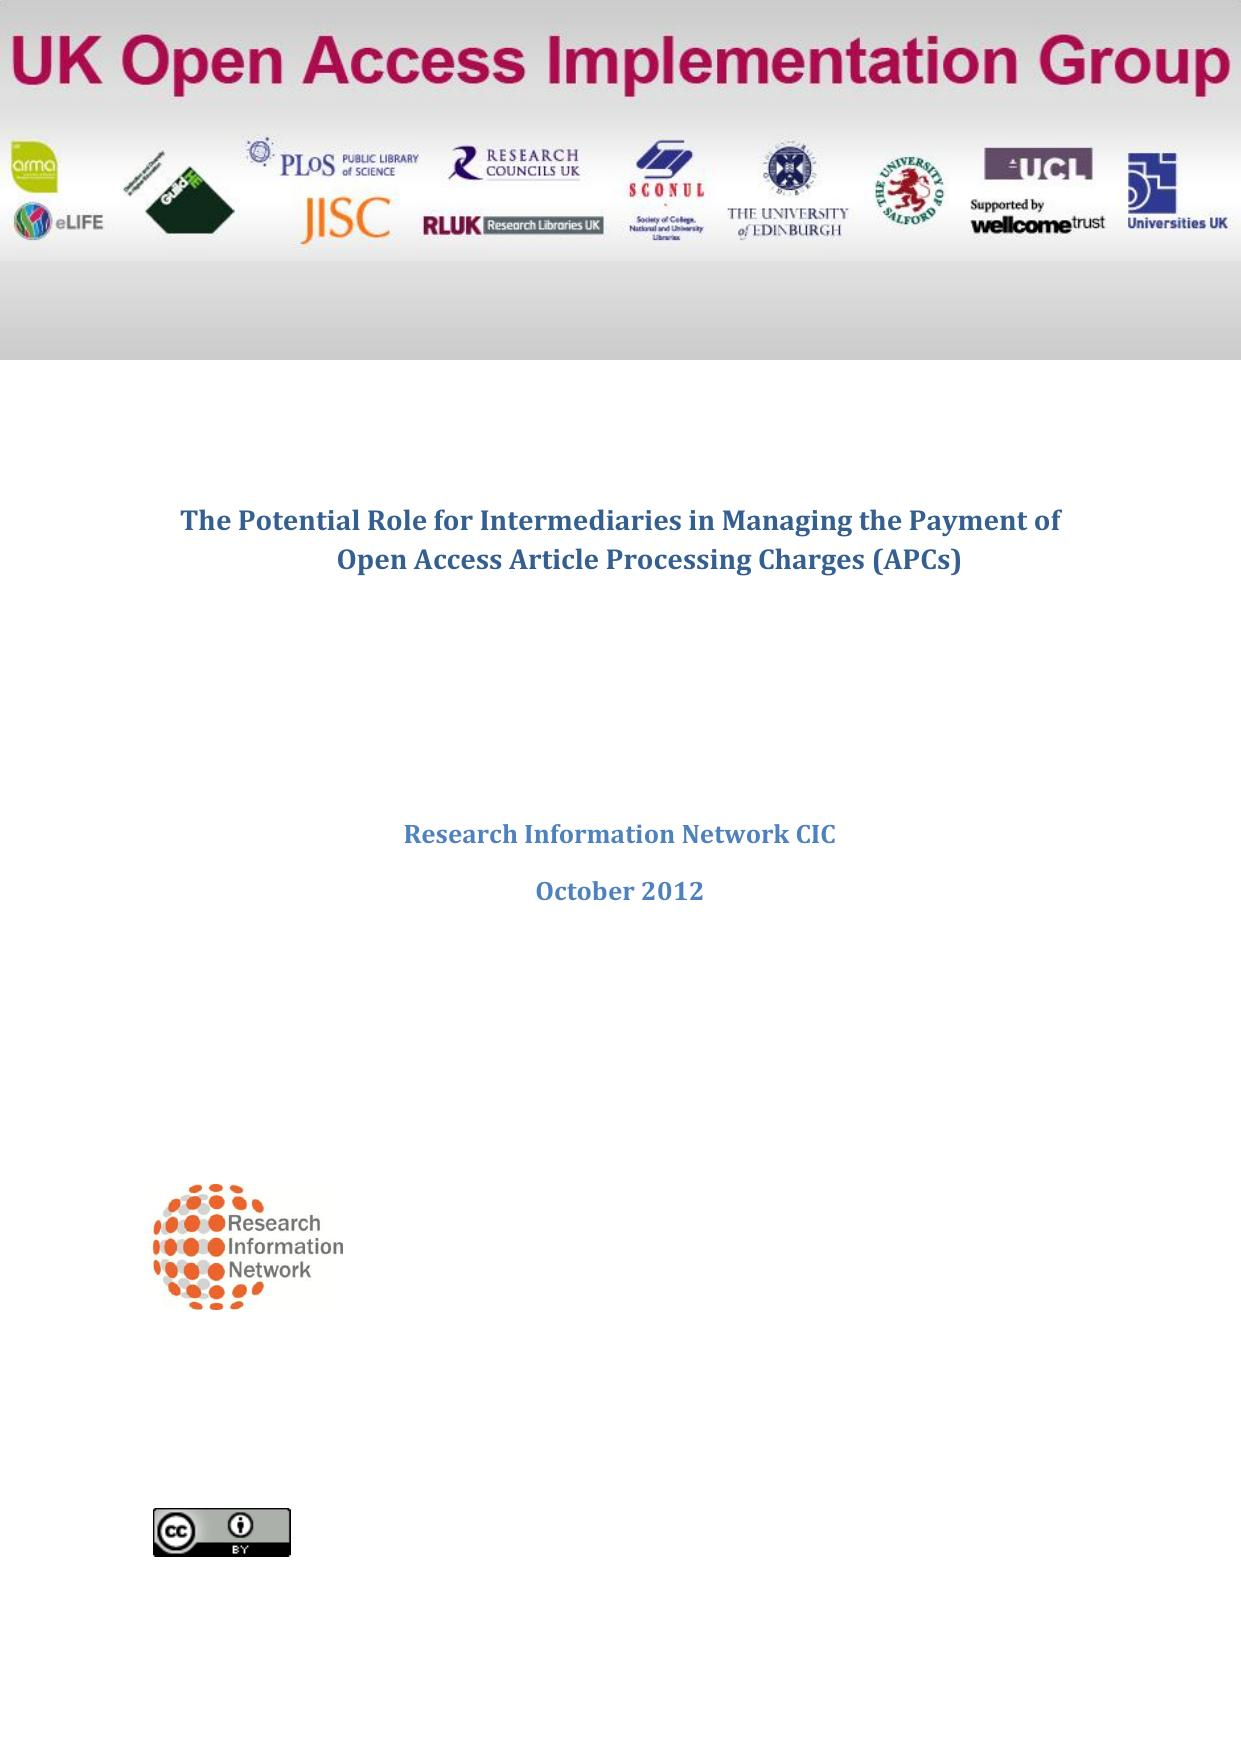 Potential Role for Intermediaries in Managing the Article Processing Charges (APCs)